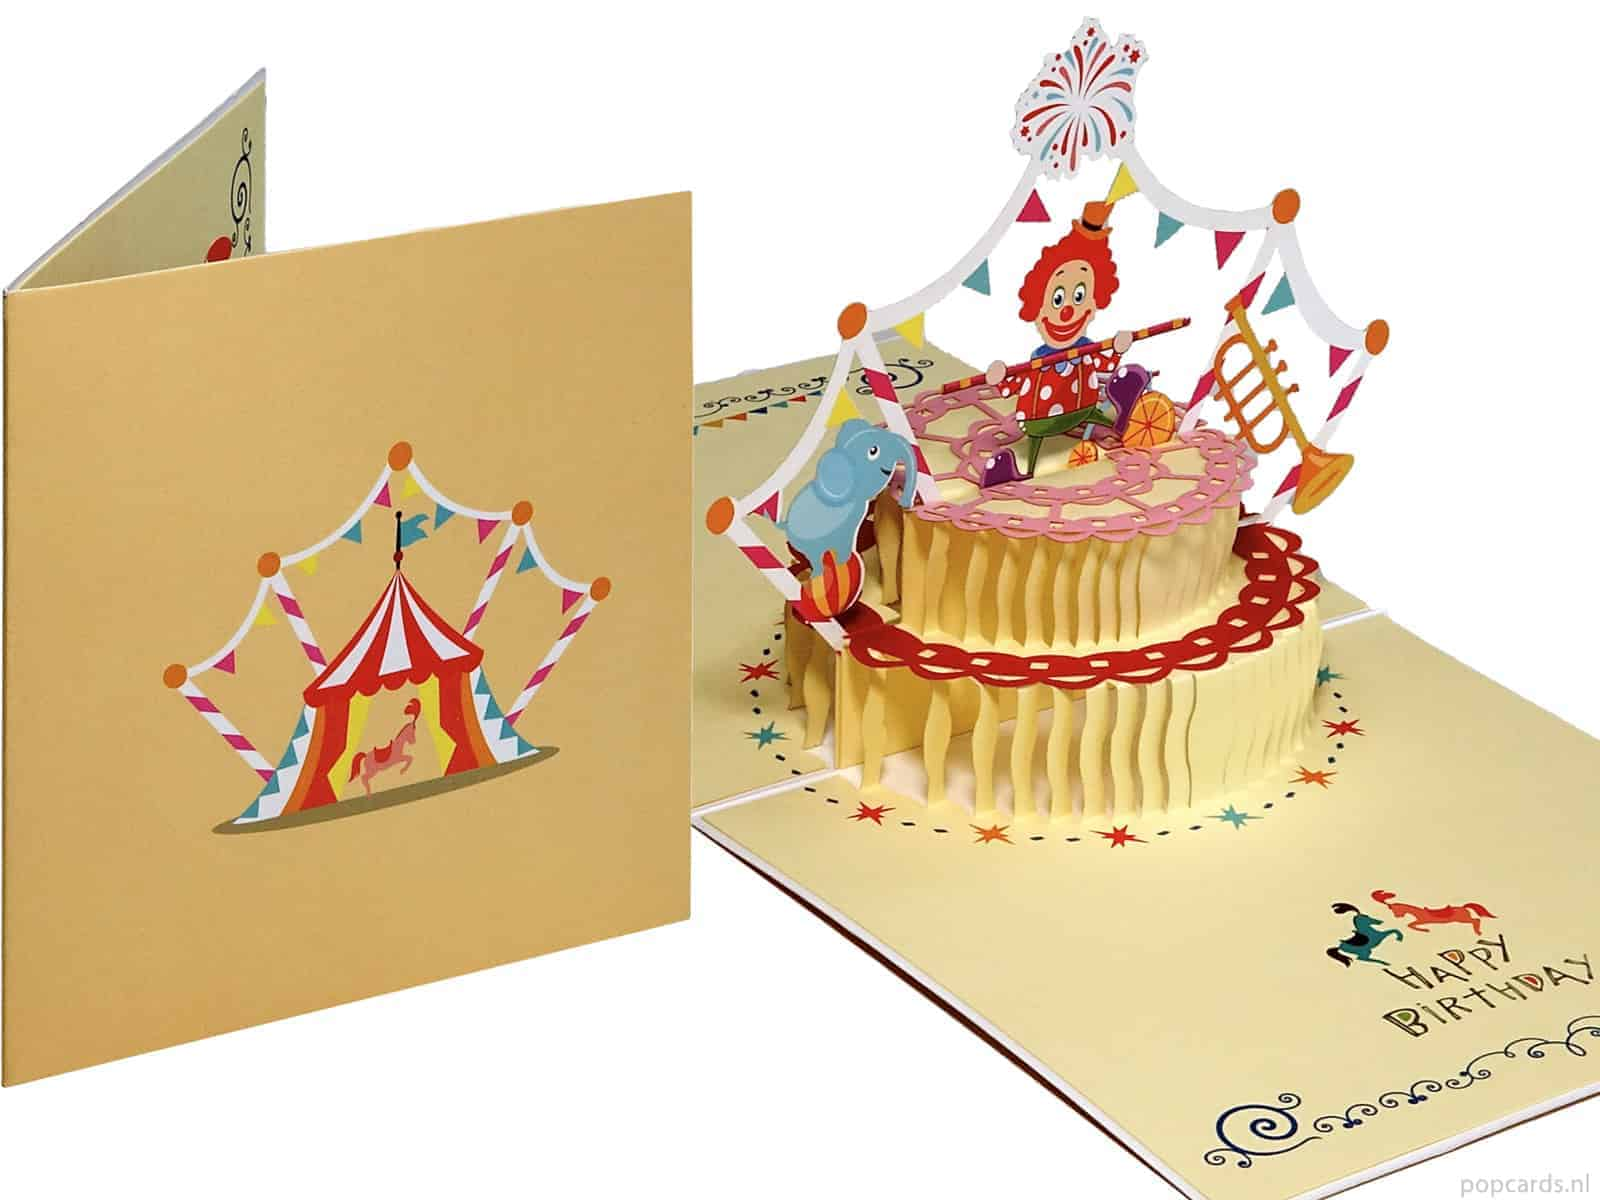 Miraculous Cheerful Colorful Cake With Clown And Elephant Greeting Card Funny Birthday Cards Online Benoljebrpdamsfinfo